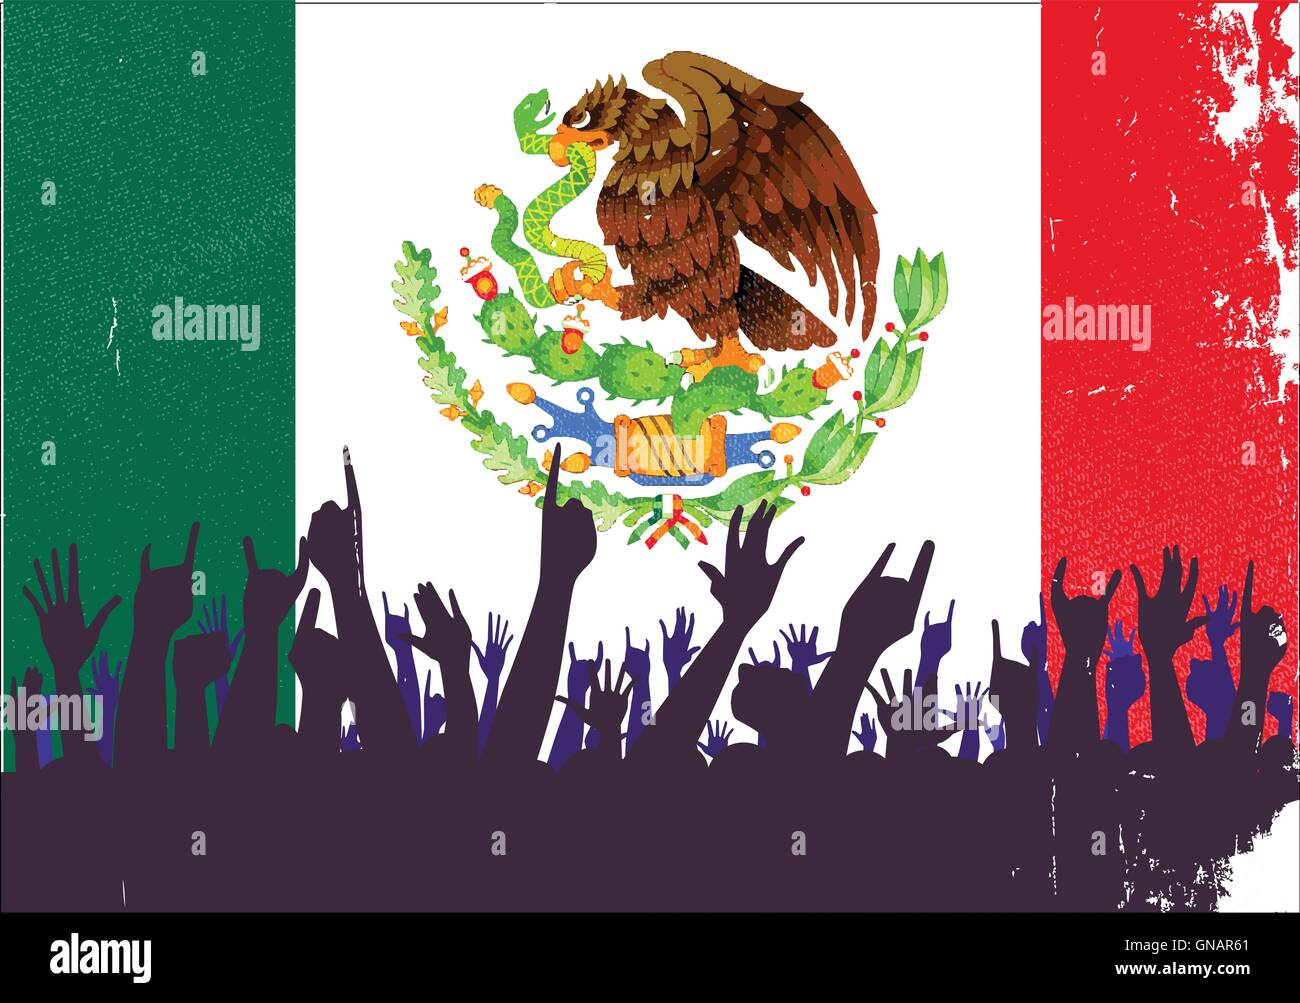 Mexico Flag with Audience - Stock Image